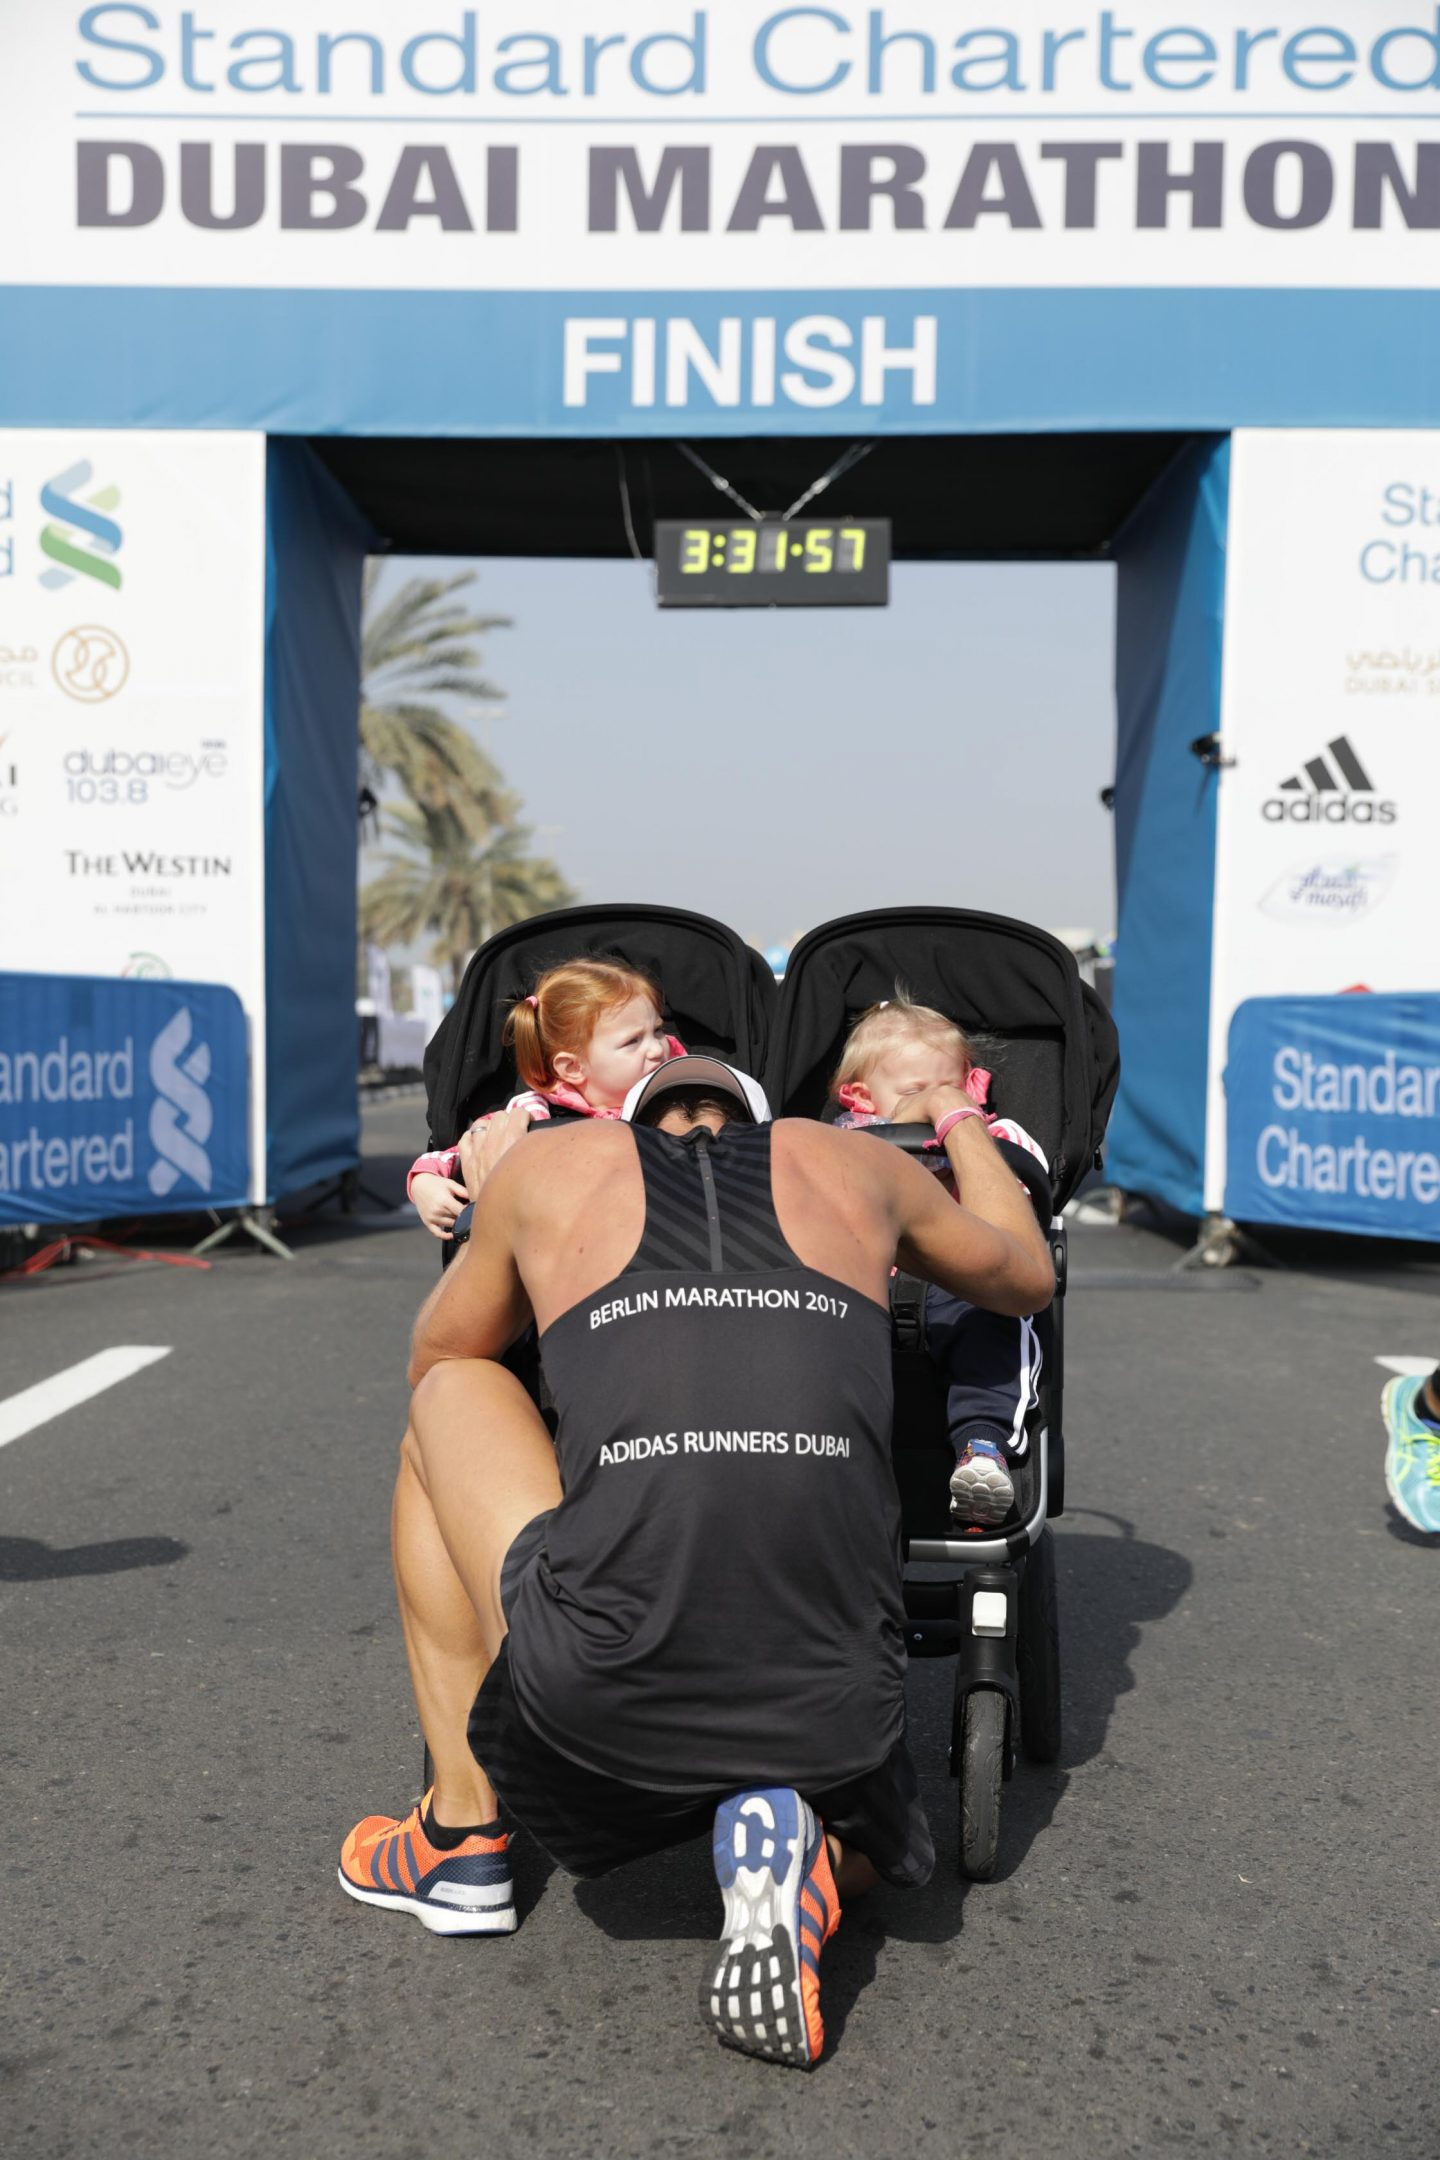 A father kneels down infront of his daughters after finishing a marathon. running, marathon, completion, success, goal, happy, proud